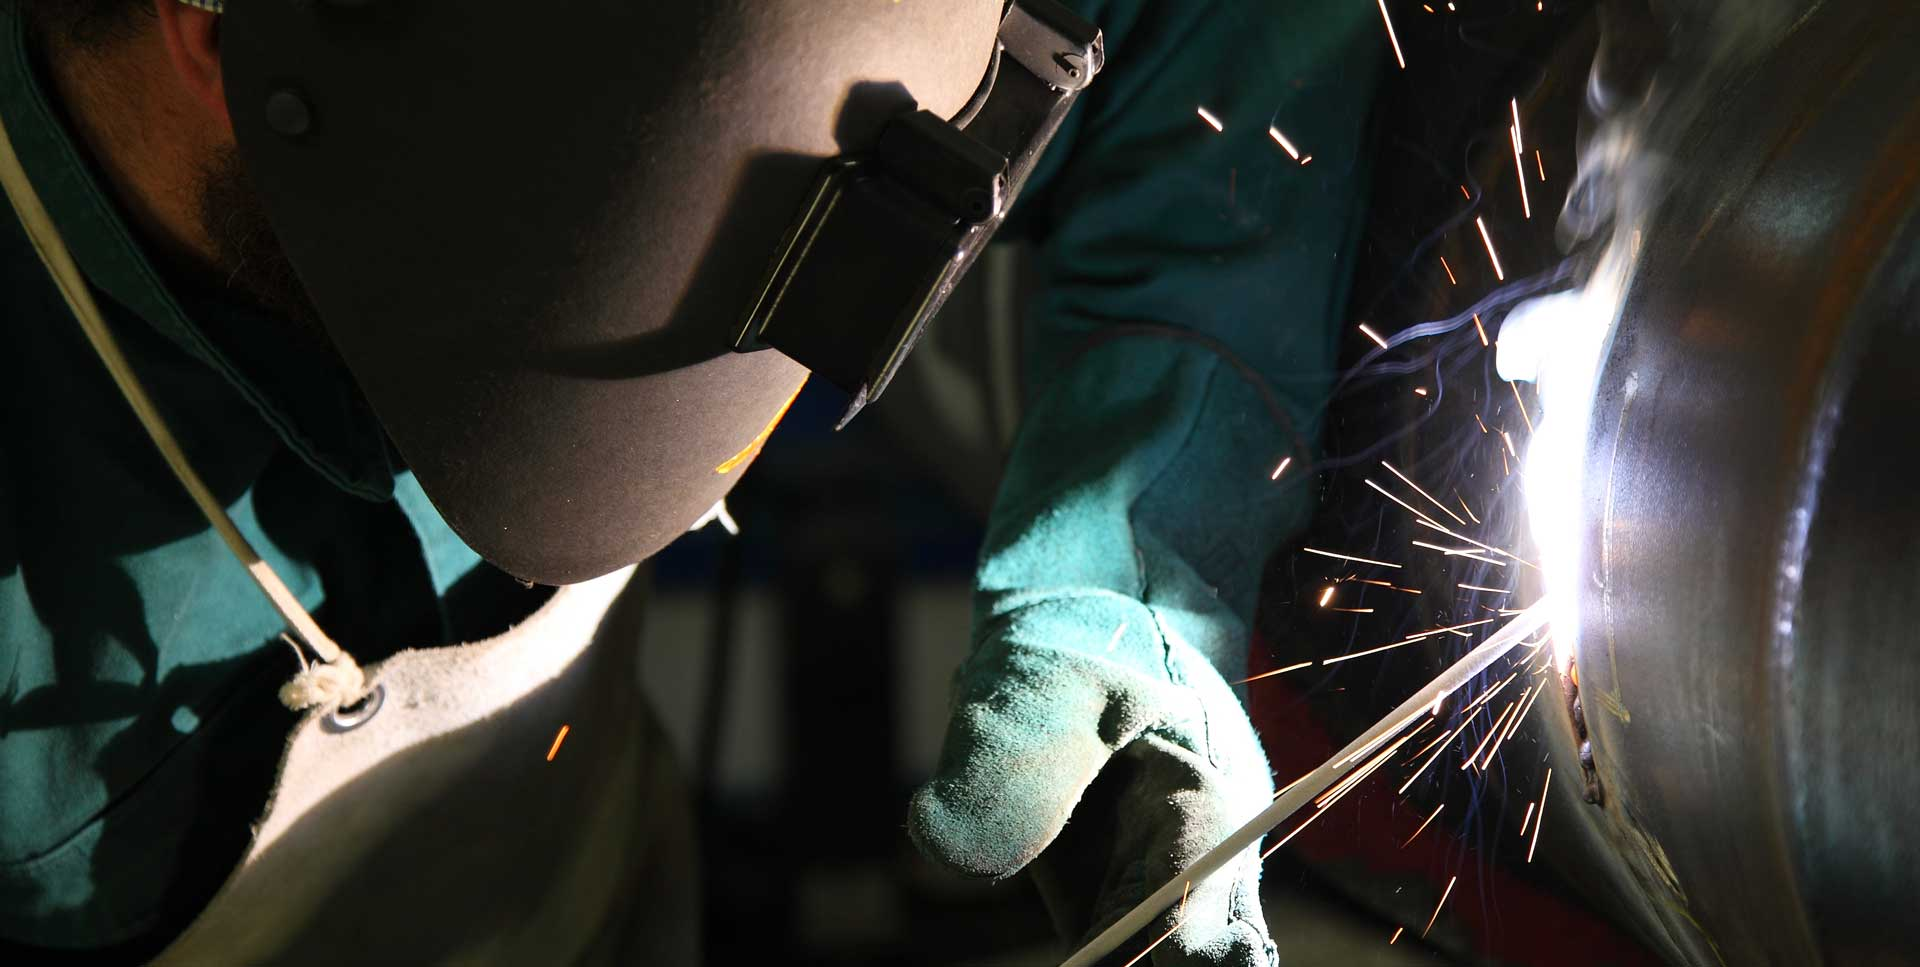 EWS-Engineering and Welding Services